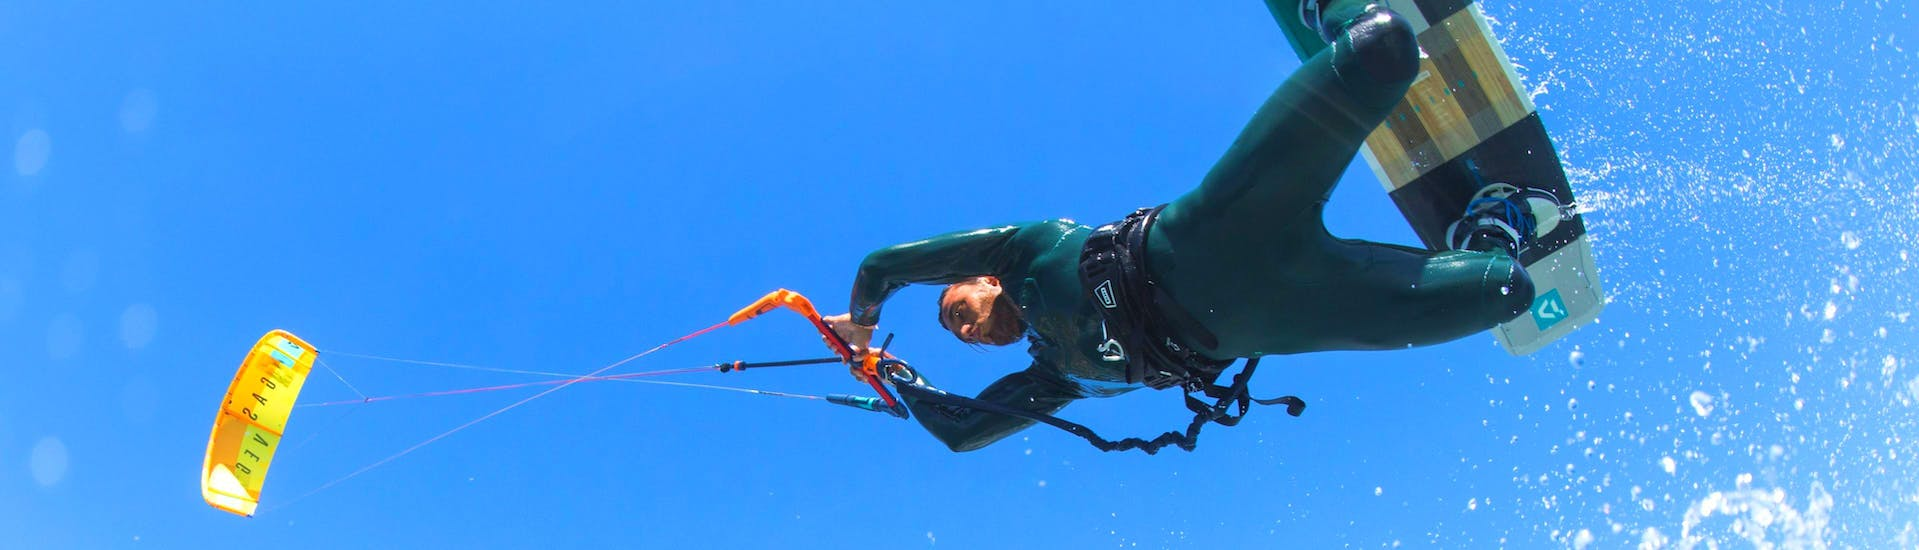 private-refresher-kitesurfing-lessons-advanced-kiteriders-hero